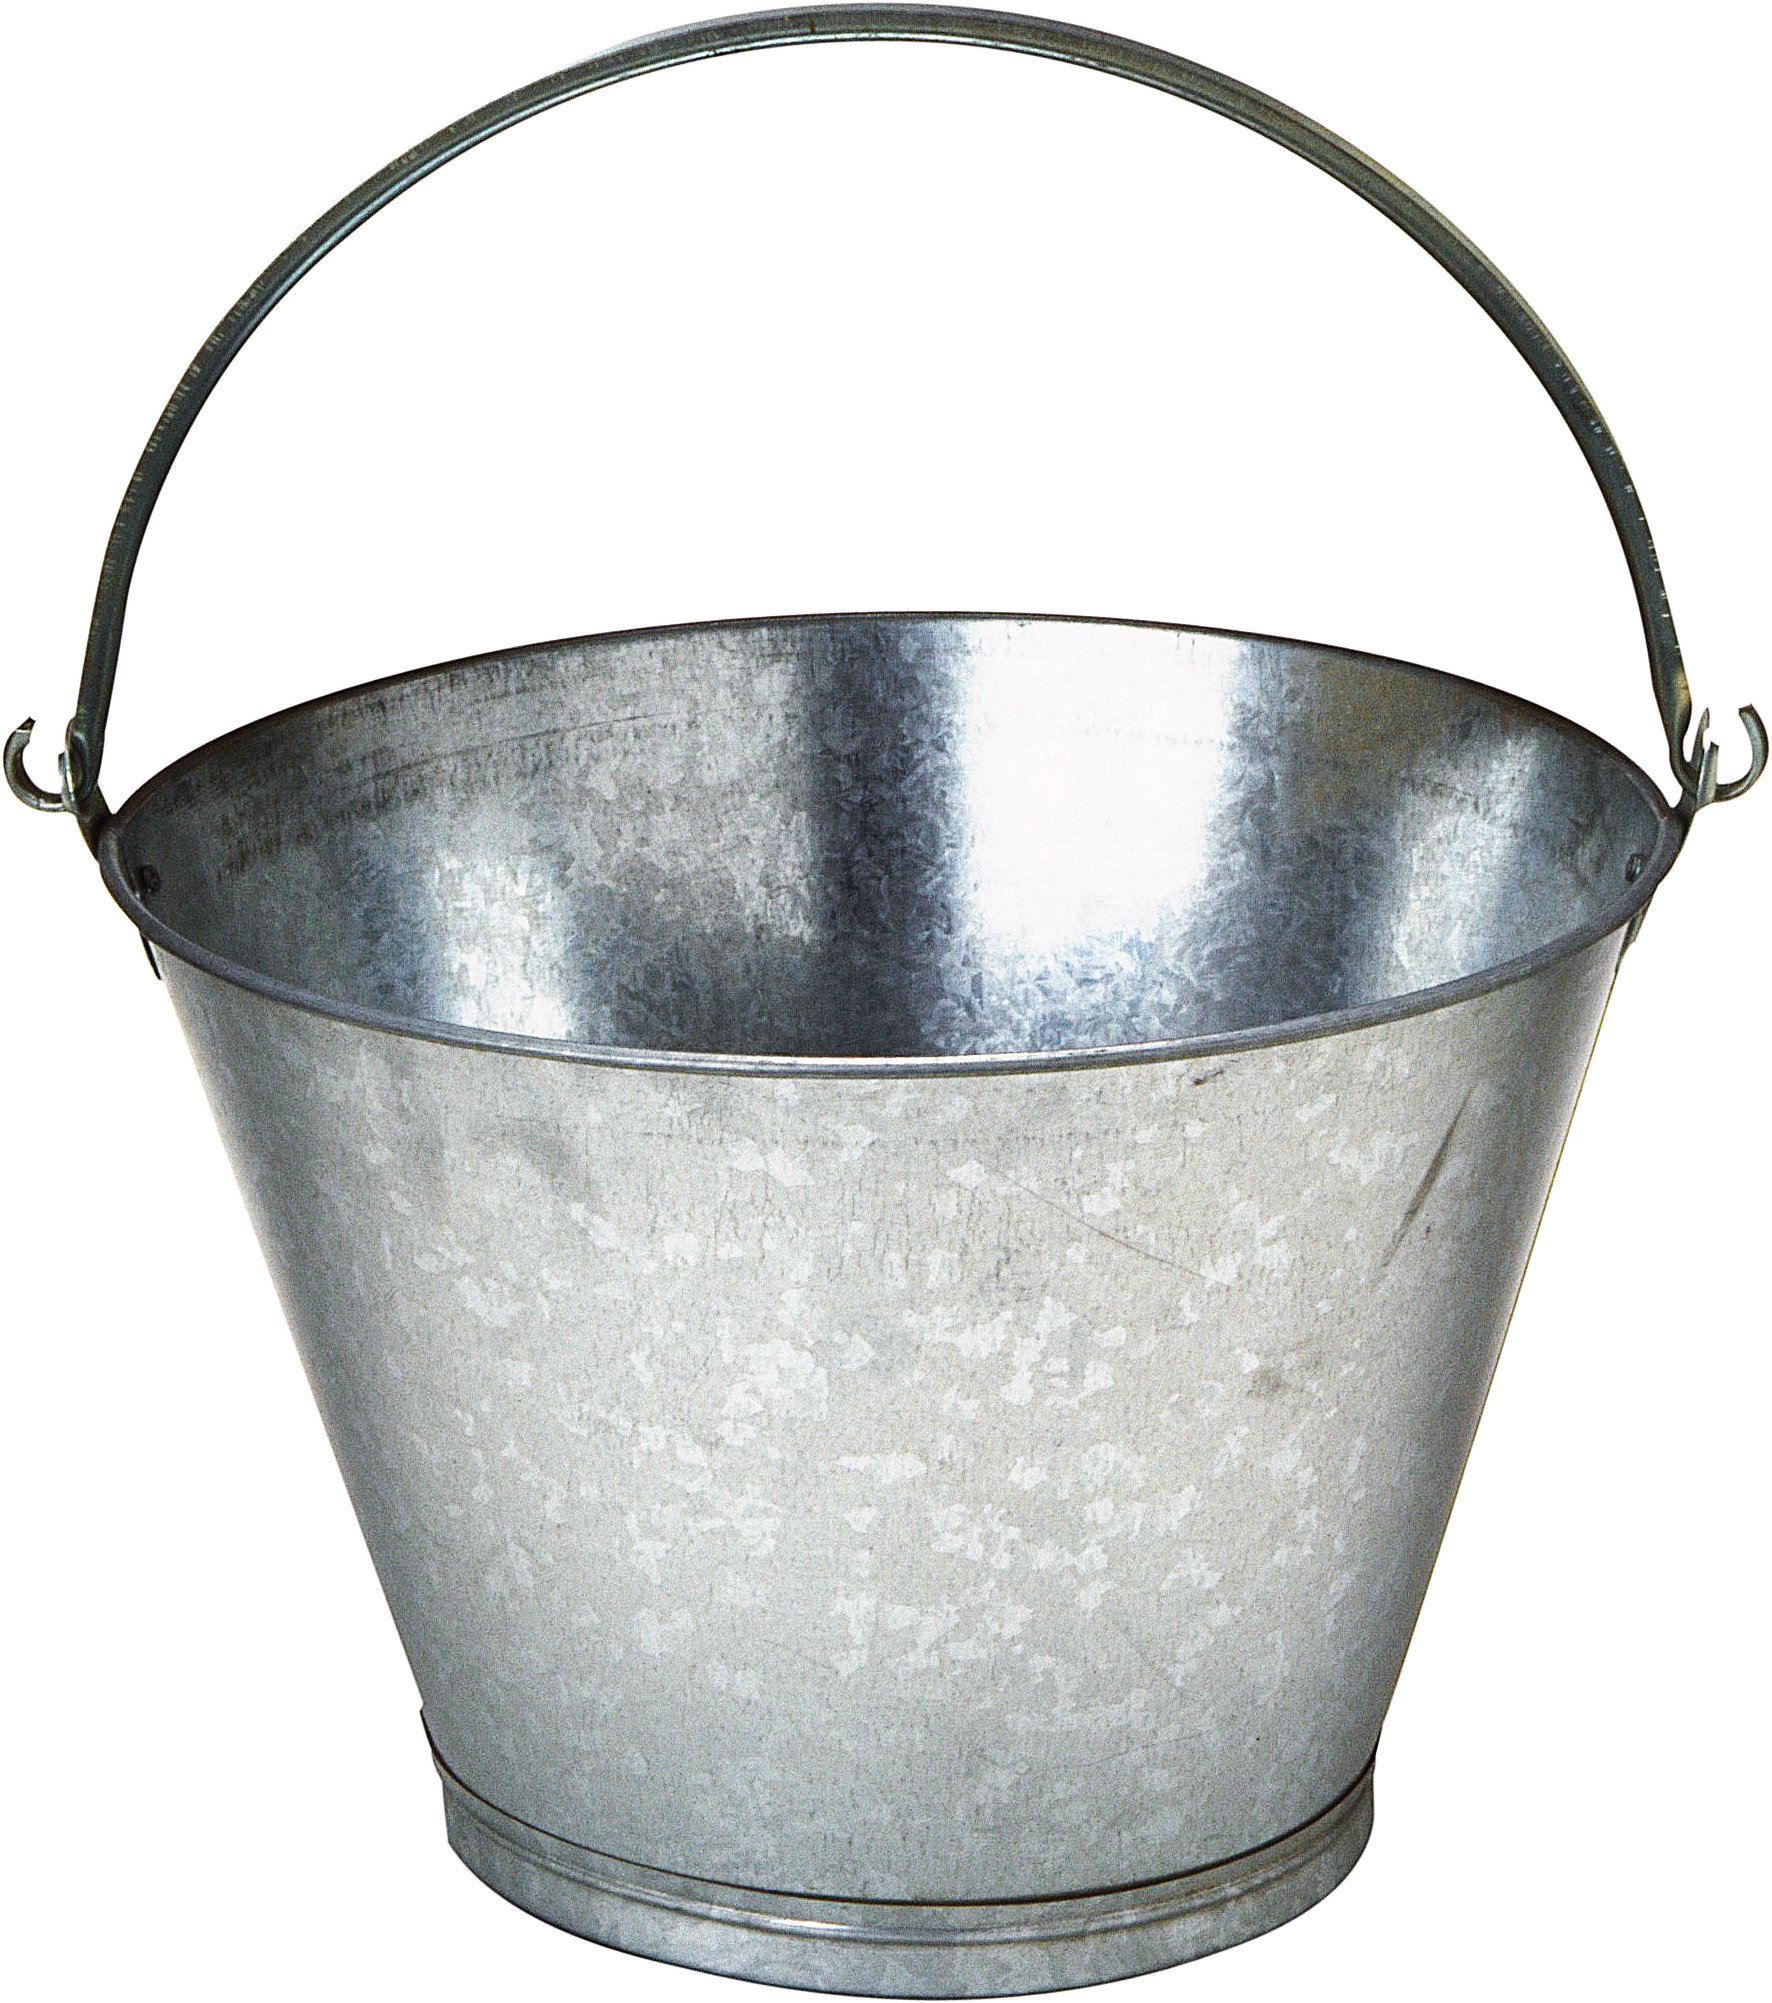 Bucket transparent gray. Png image web icons